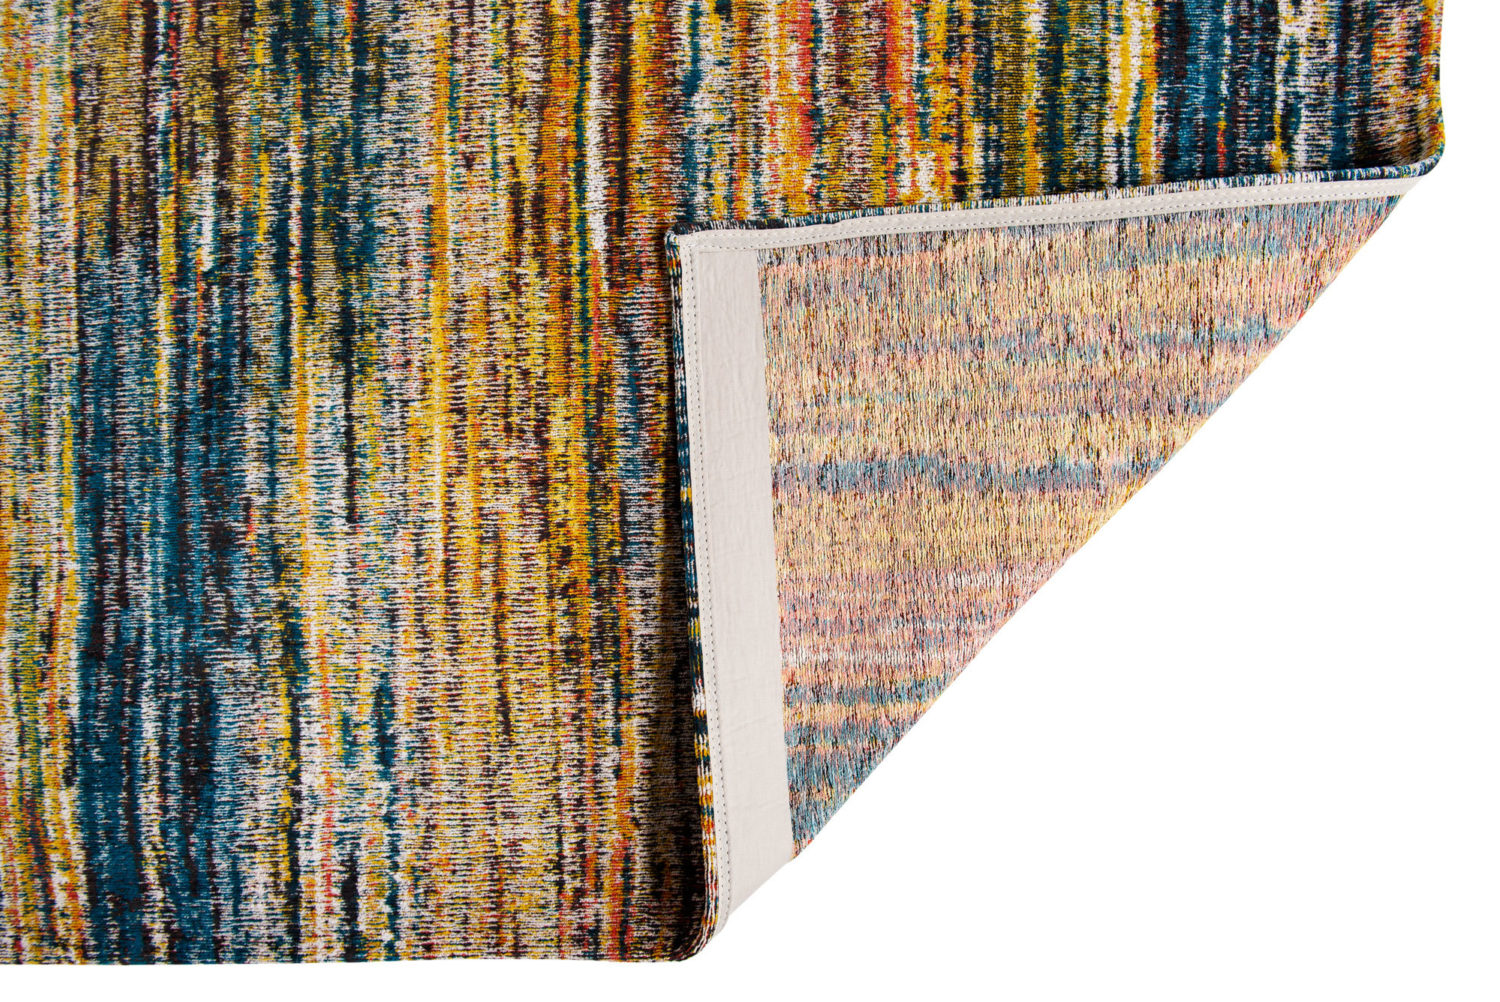 Sari is inspired by the Indian rugs made of Sari silk leftovers